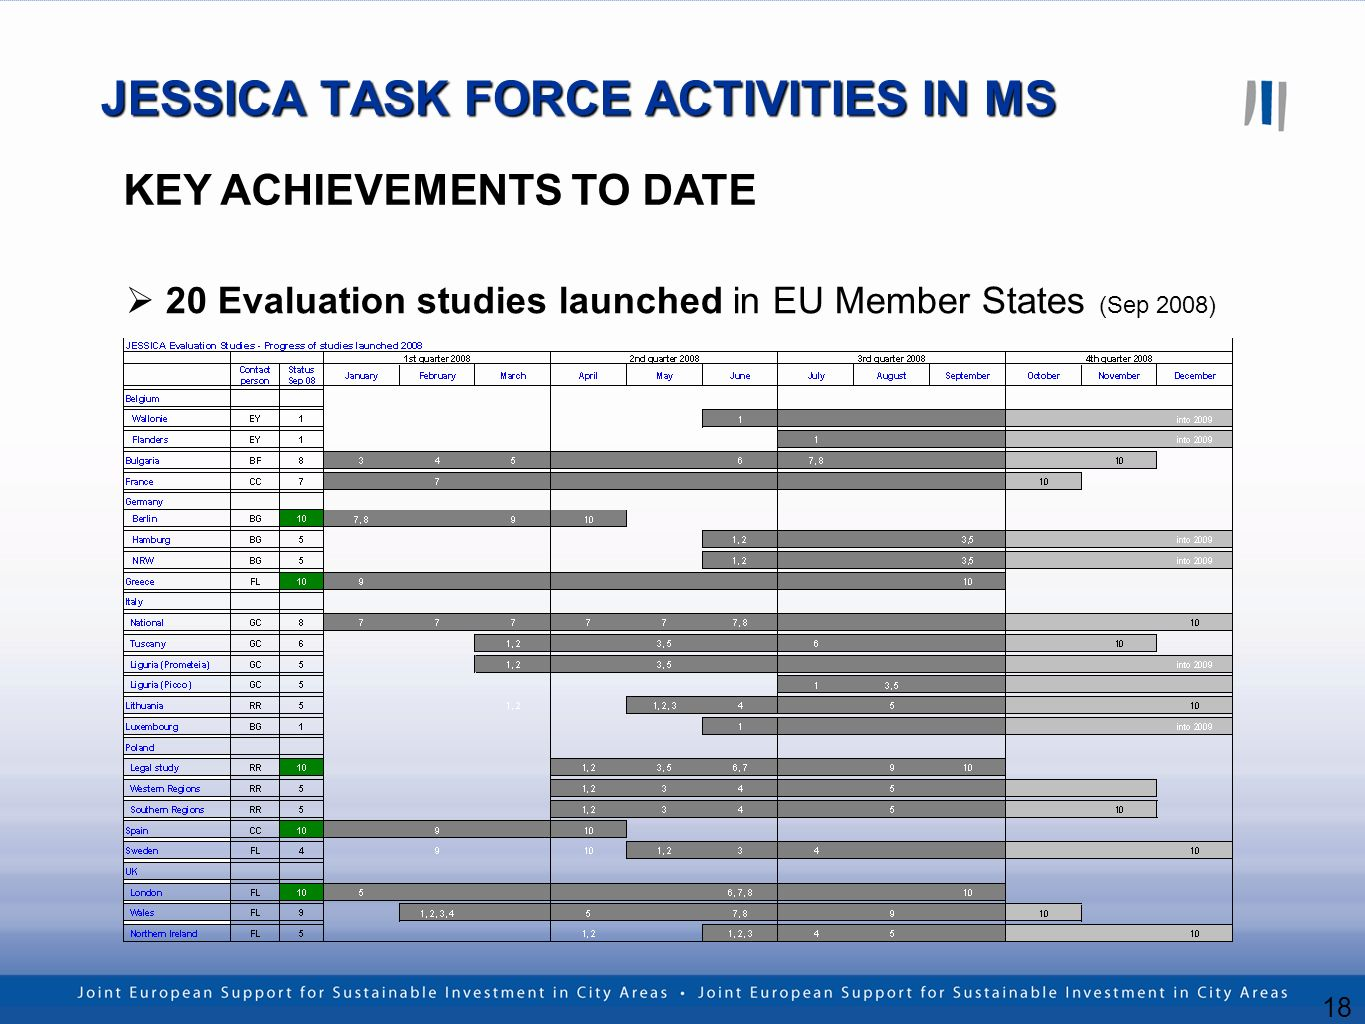 18 20 Evaluation studies launched in EU Member States (Sep 2008) KEY ACHIEVEMENTS TO DATE JESSICA TASK FORCE ACTIVITIES IN MS